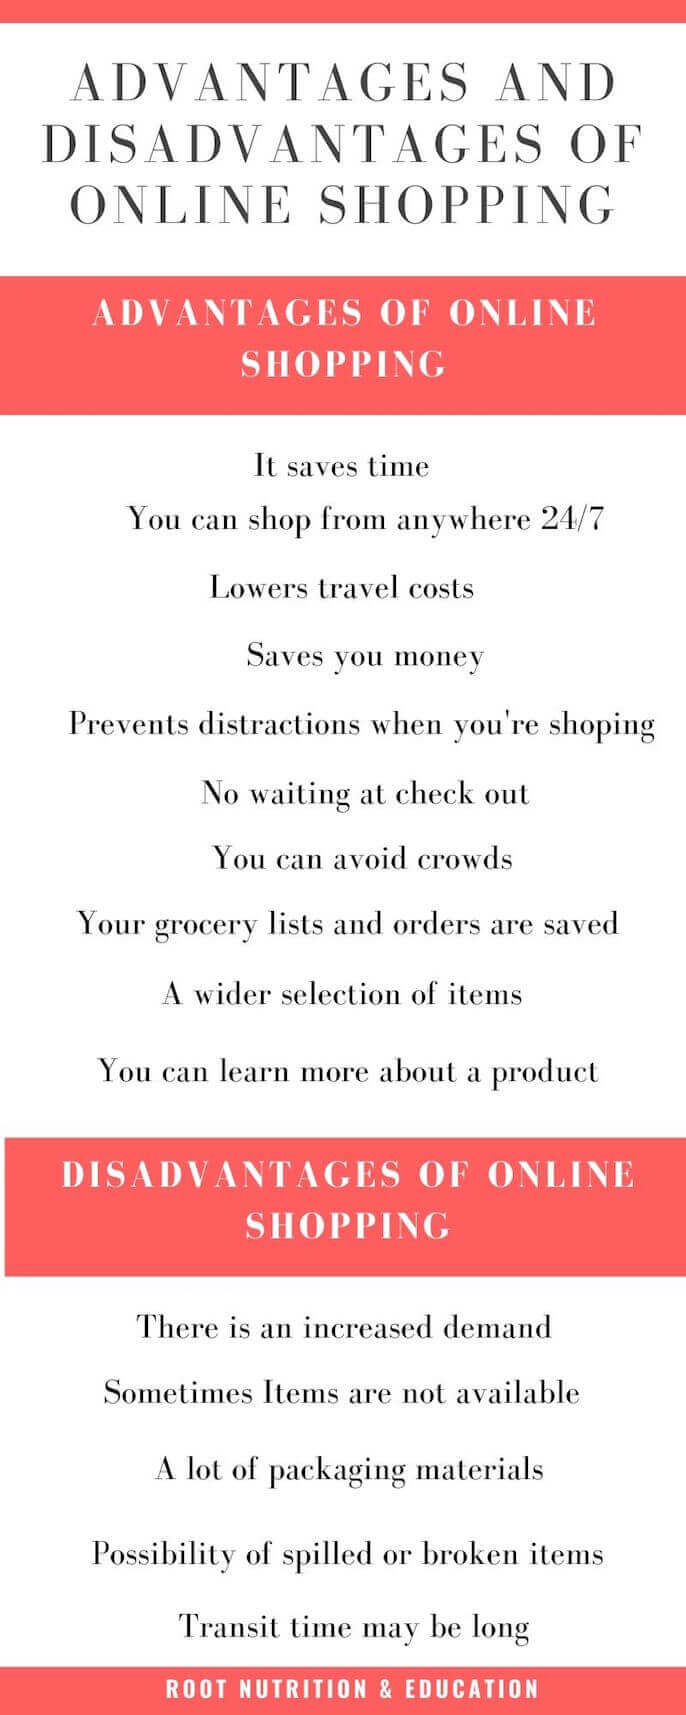 Advantages and Disadvantages of Online Shopping Infographic | Root Nutrition & Education